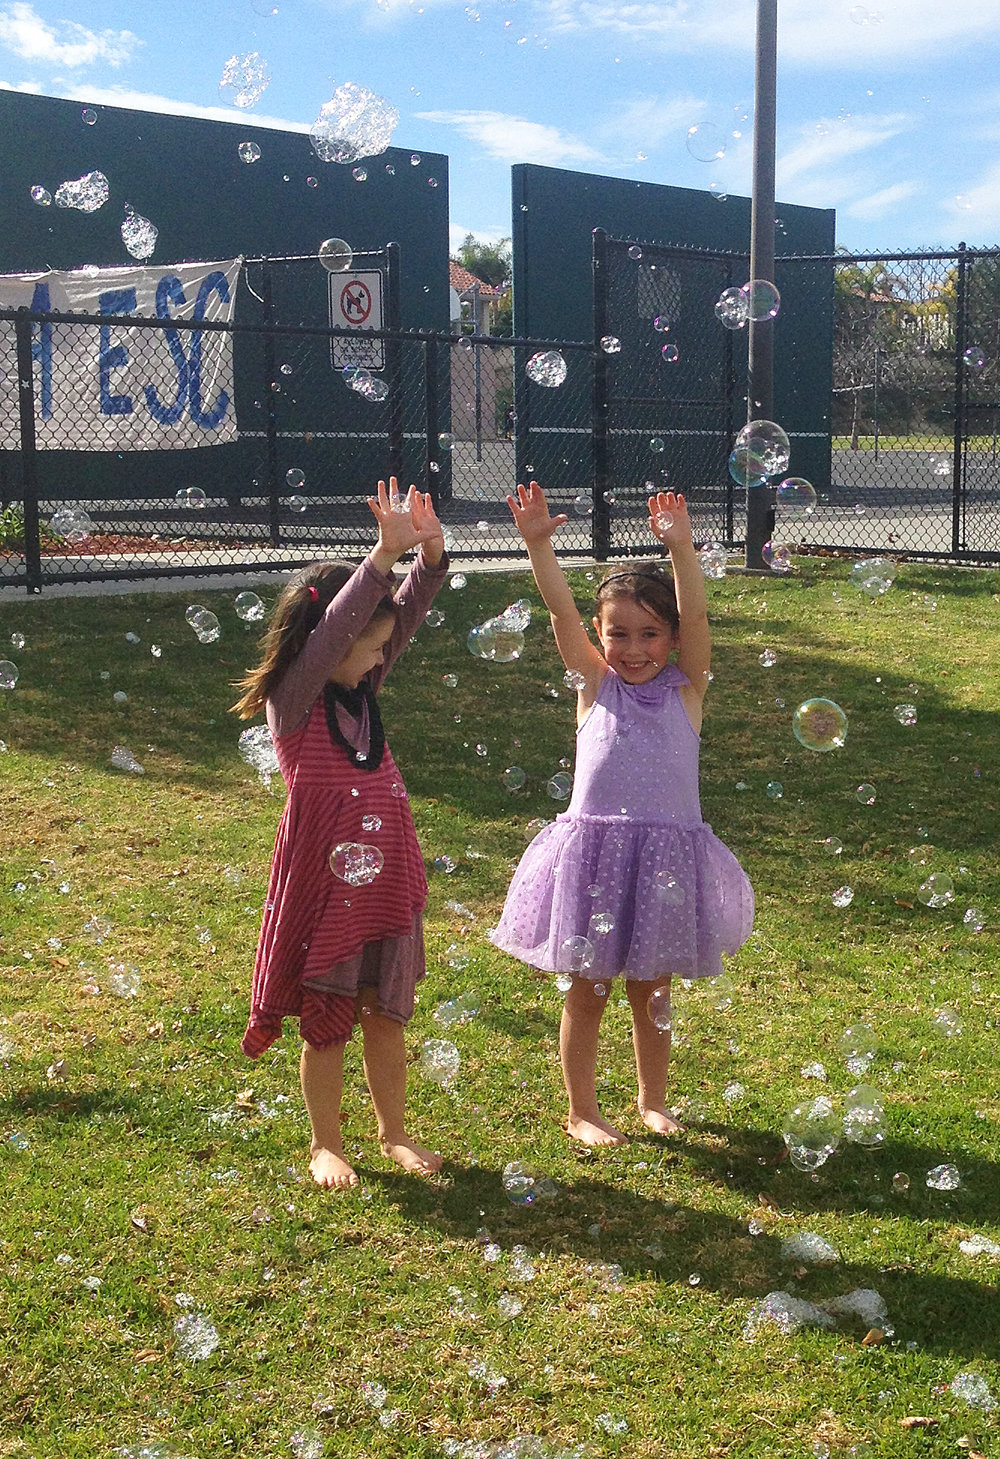 2 girls and bubbles.jpg